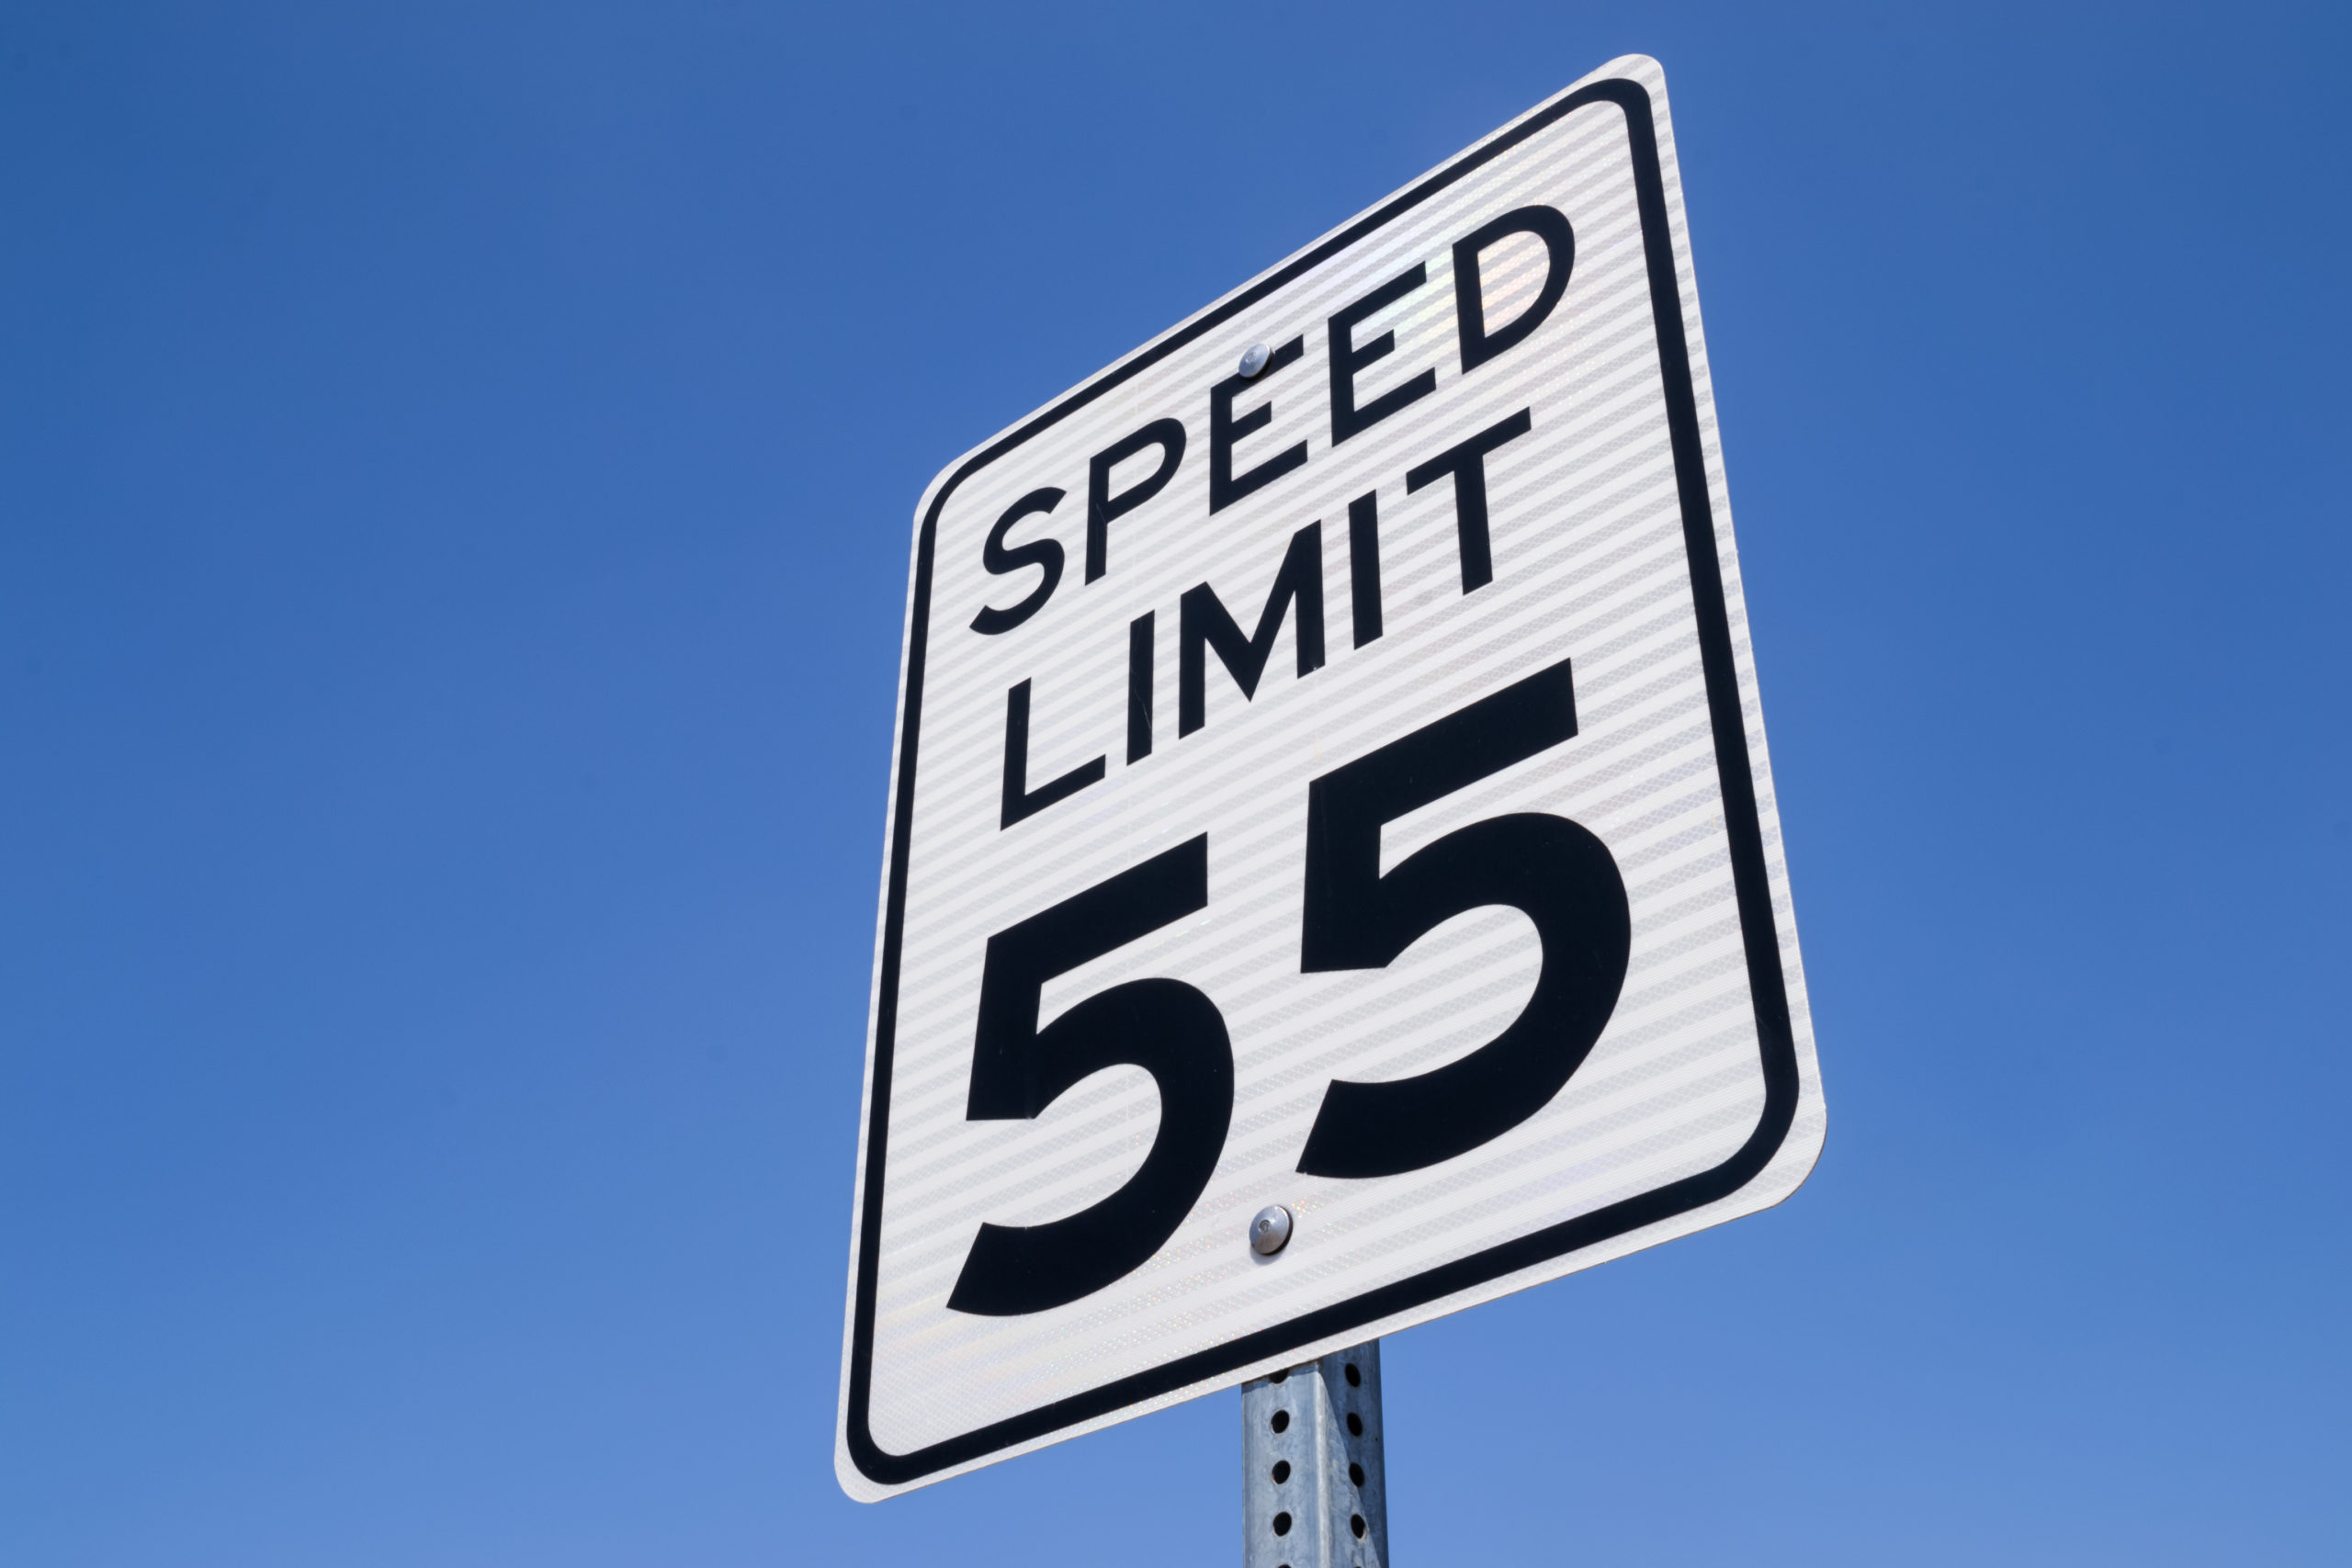 55 speed limit sign